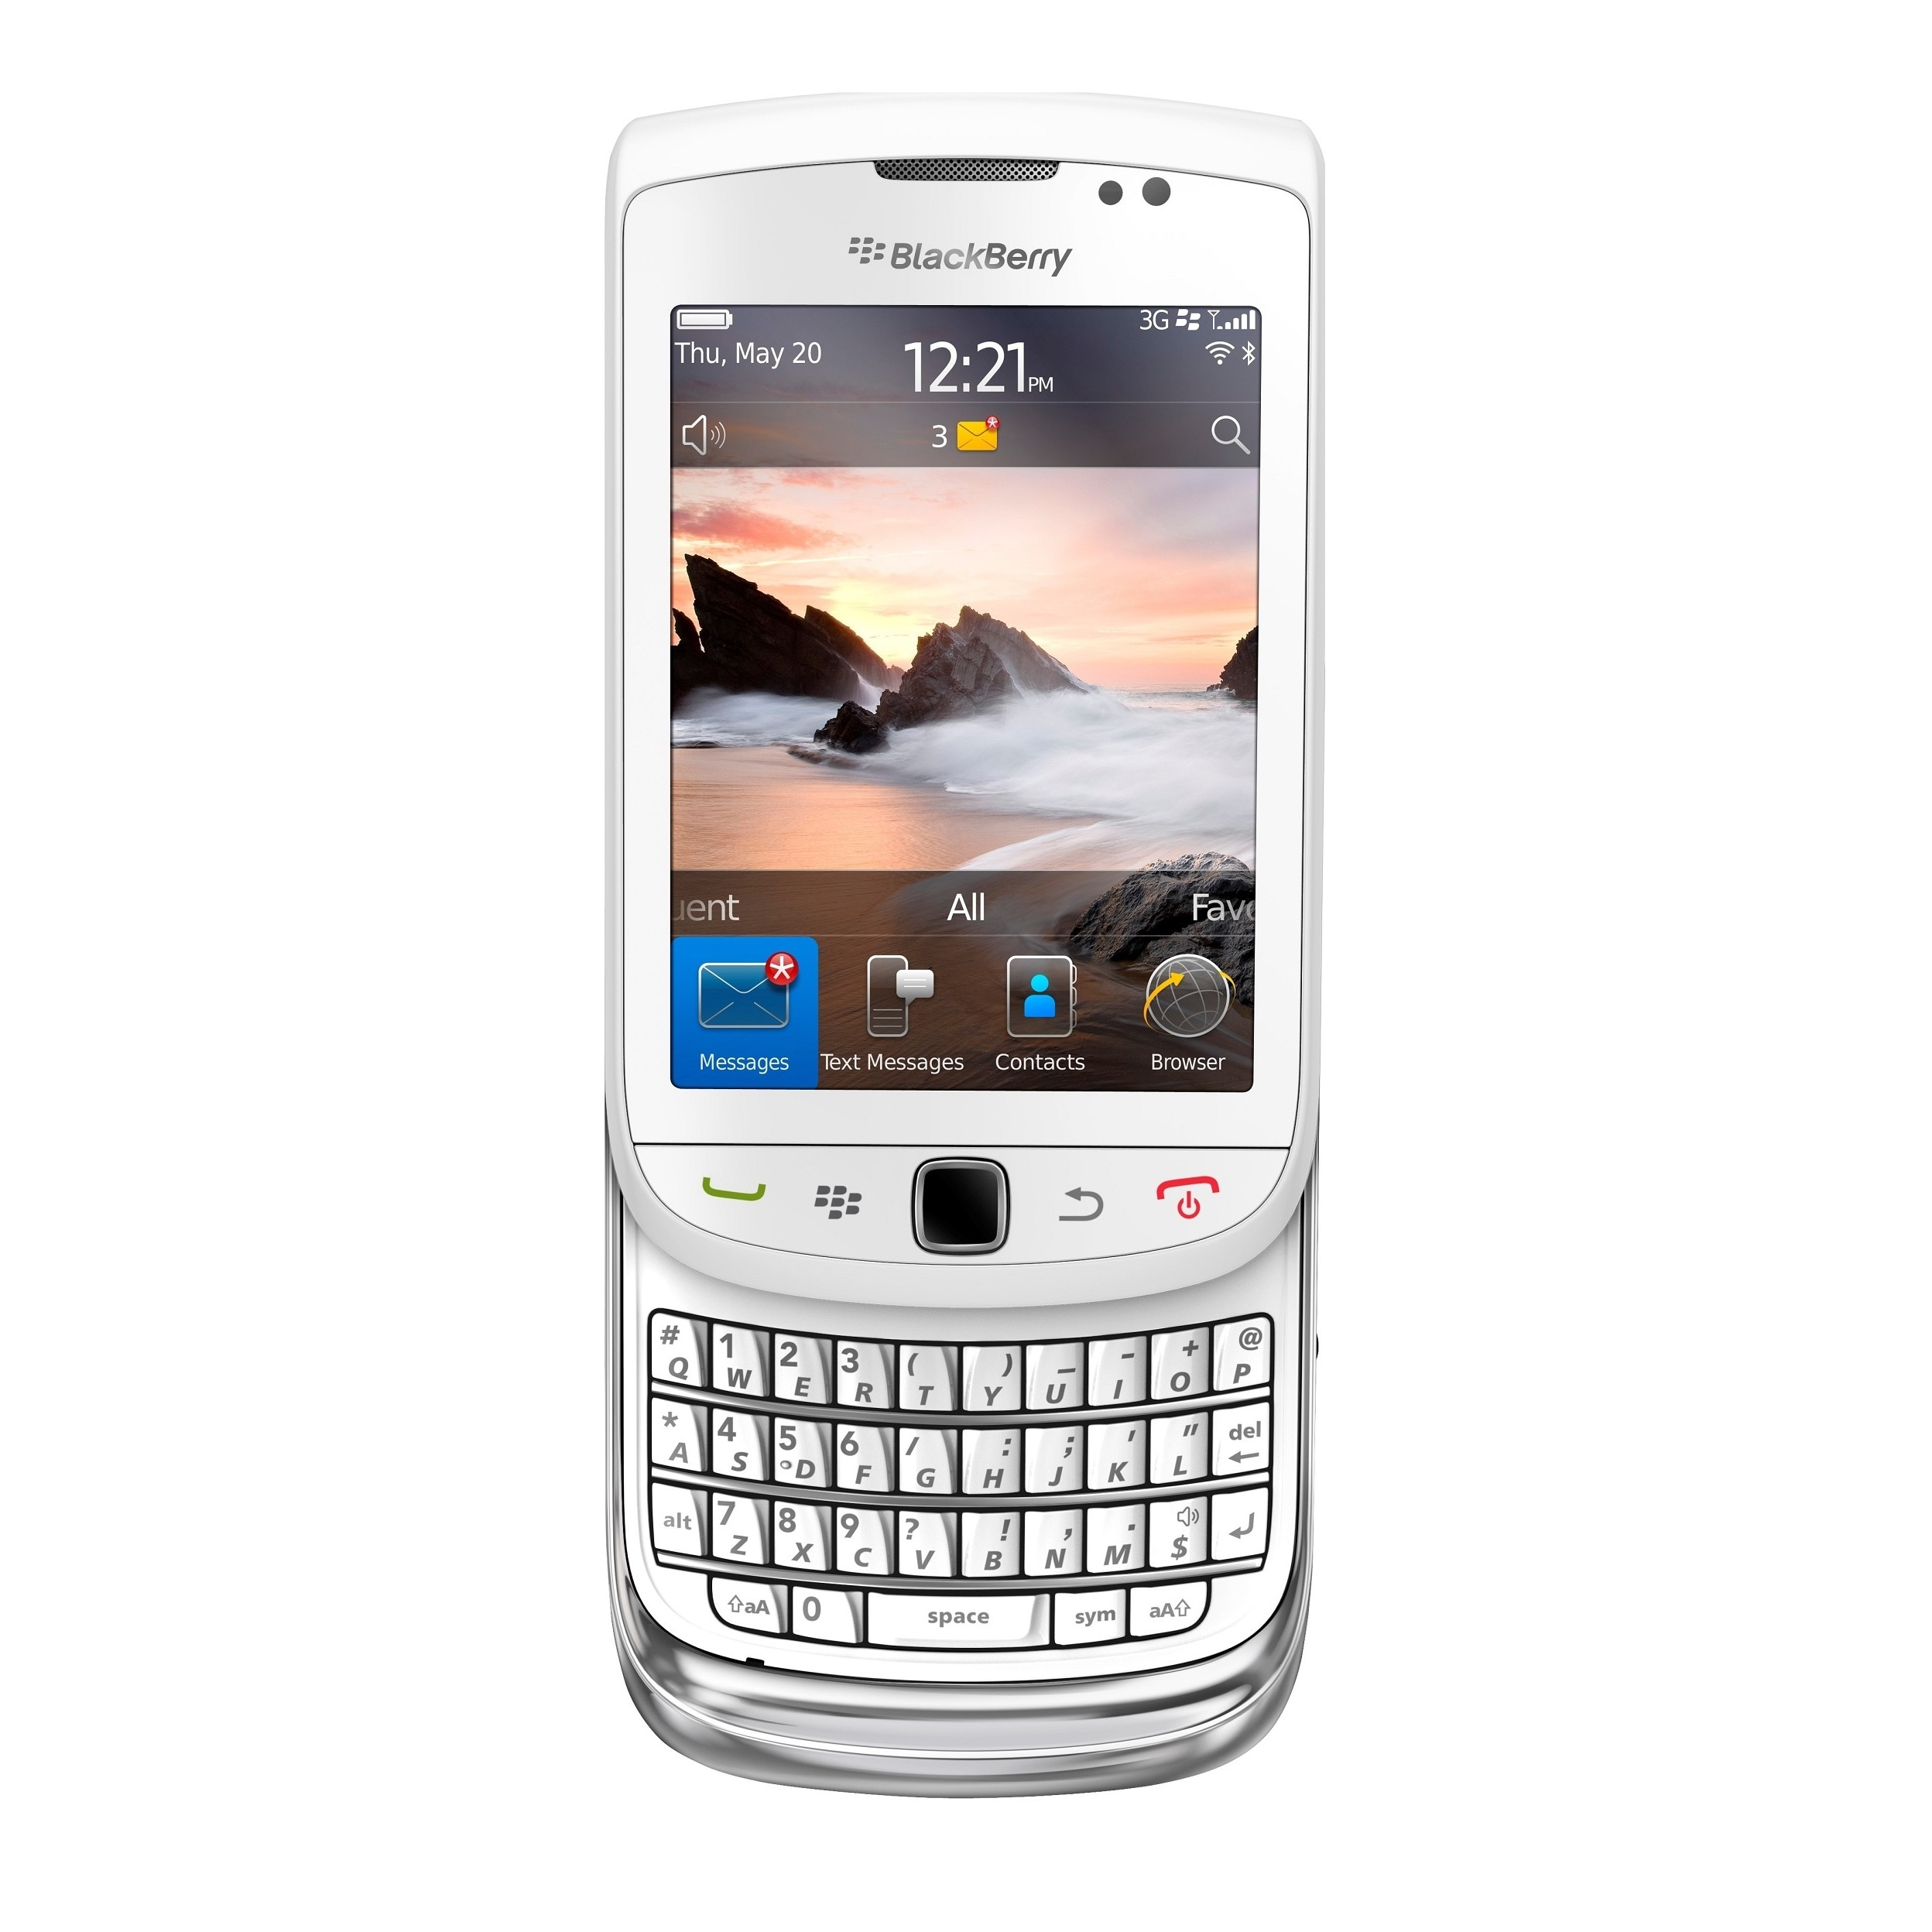 Blackberry Torch 9810 White Unlocked GSM OS 7 Cell Phone ...